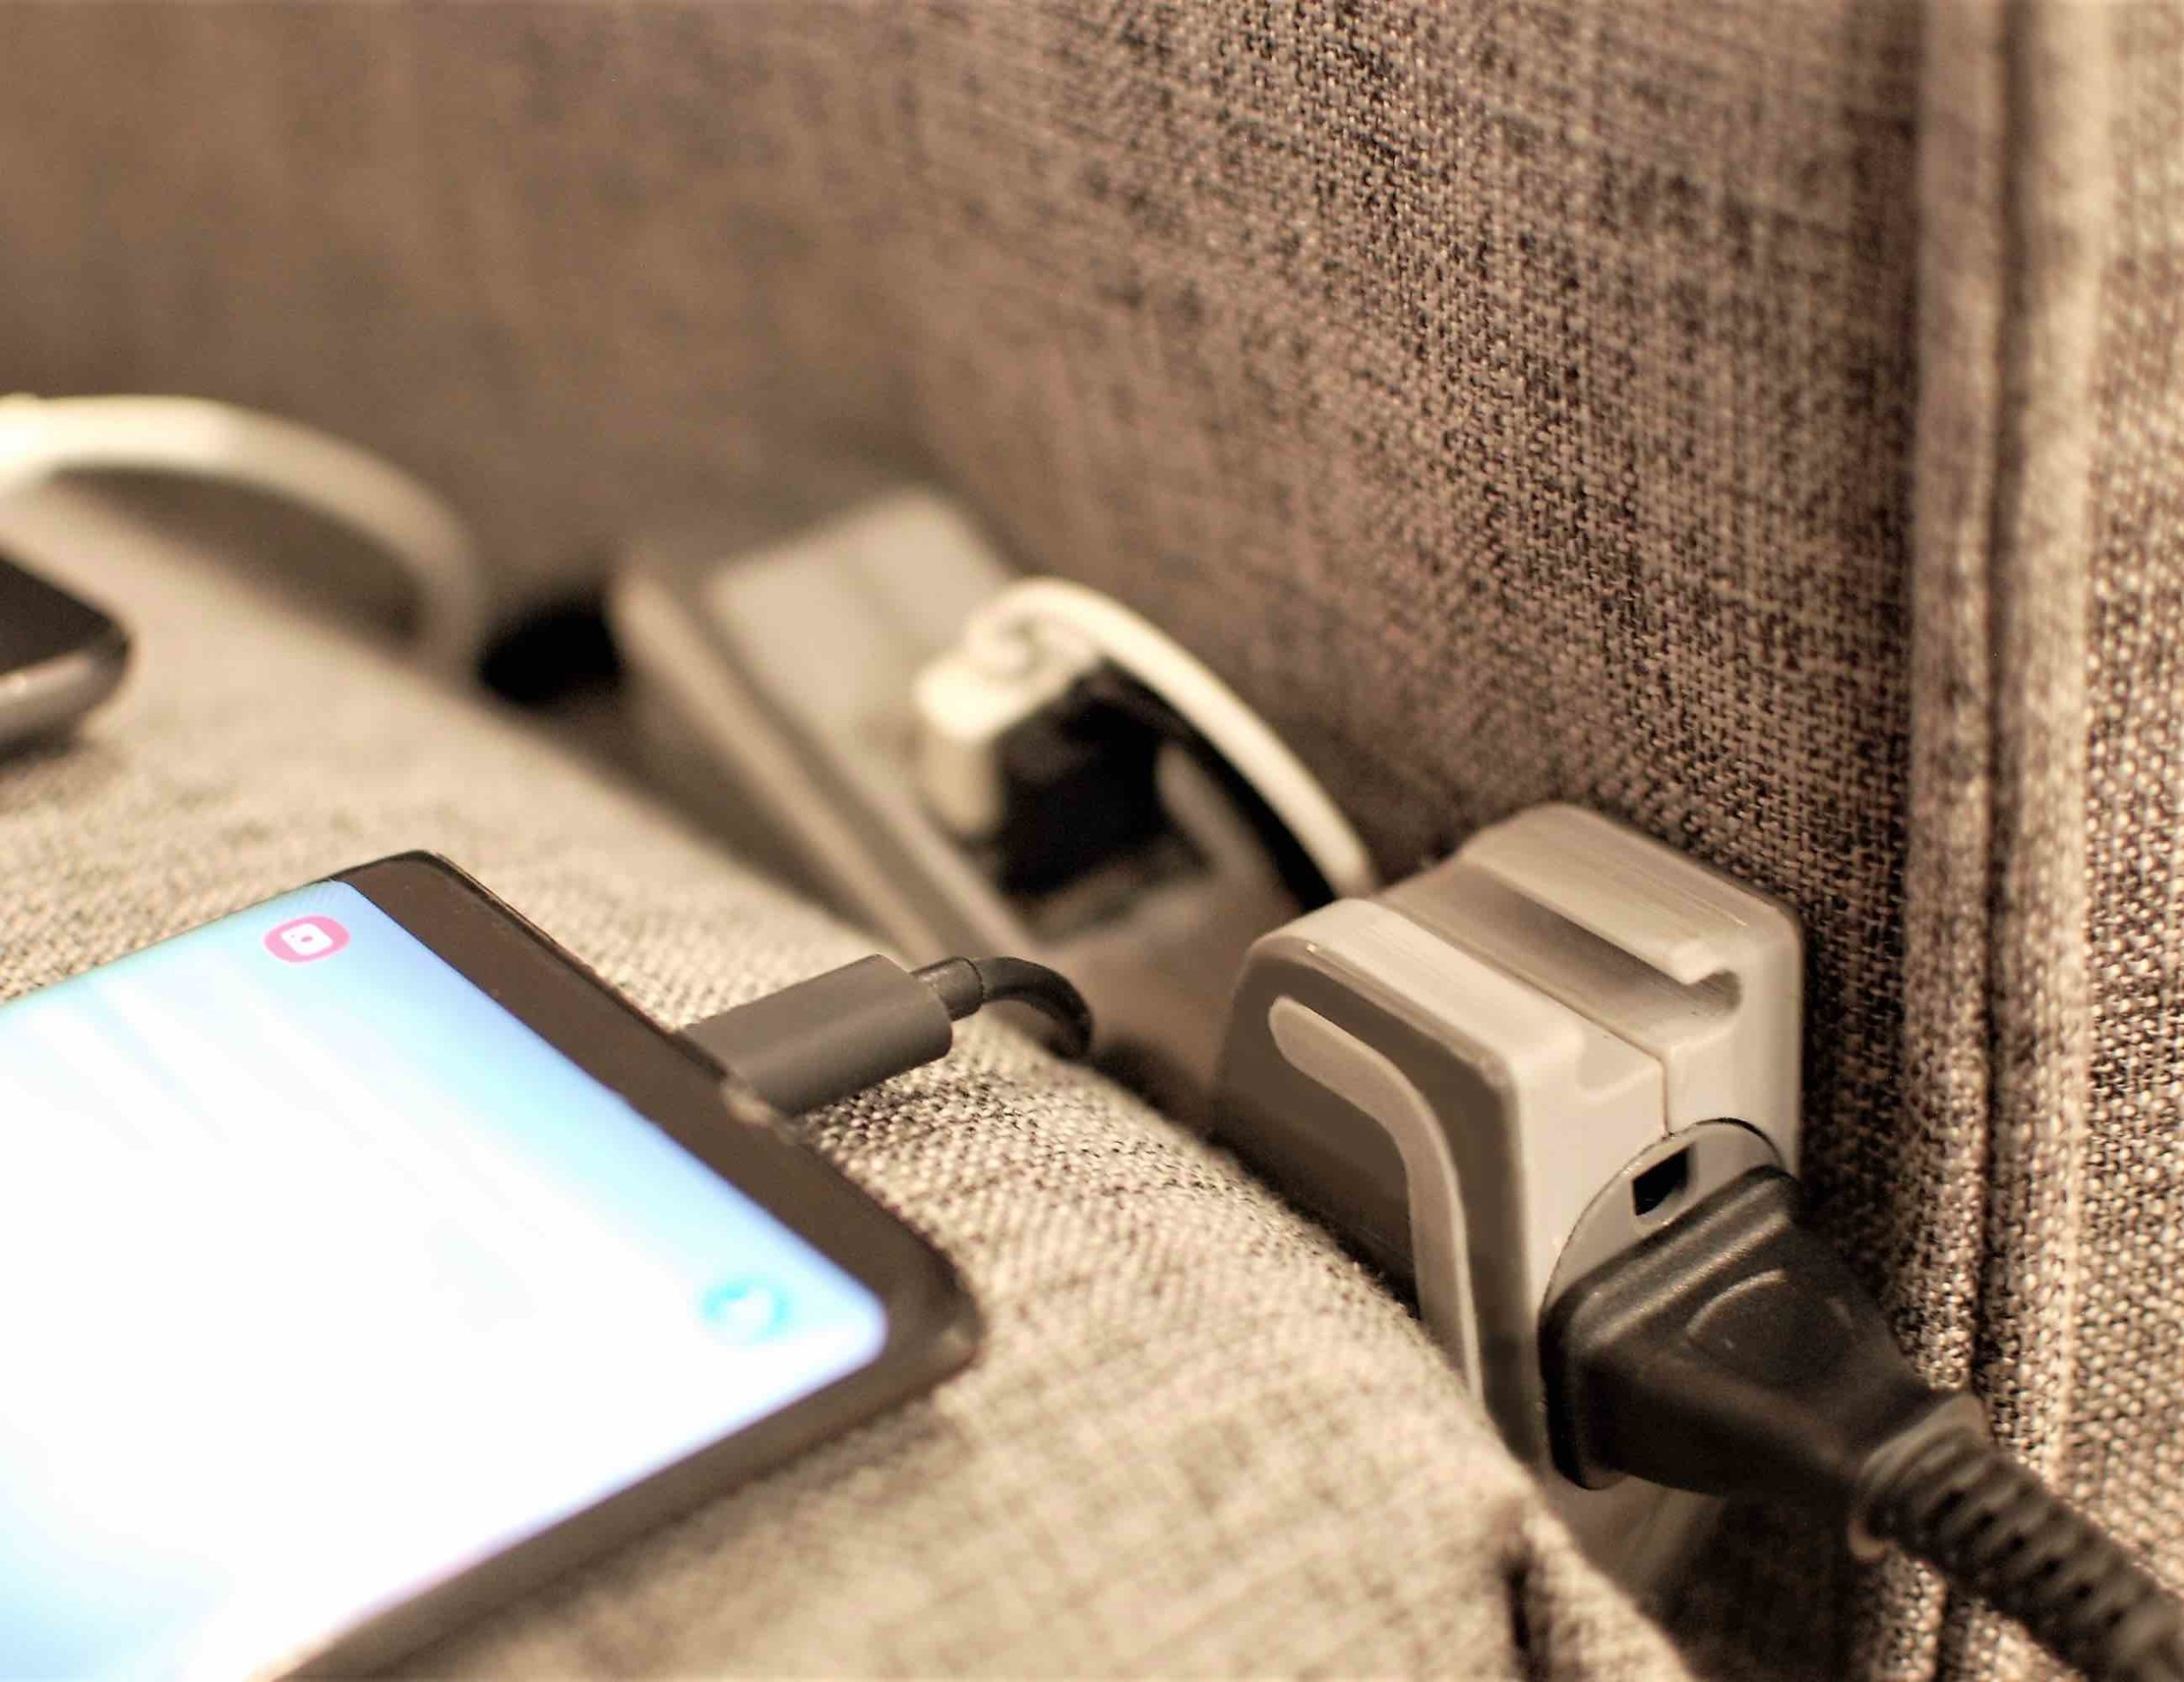 POWERFIN Sofa Extension Cord brings an outlet to your sofa